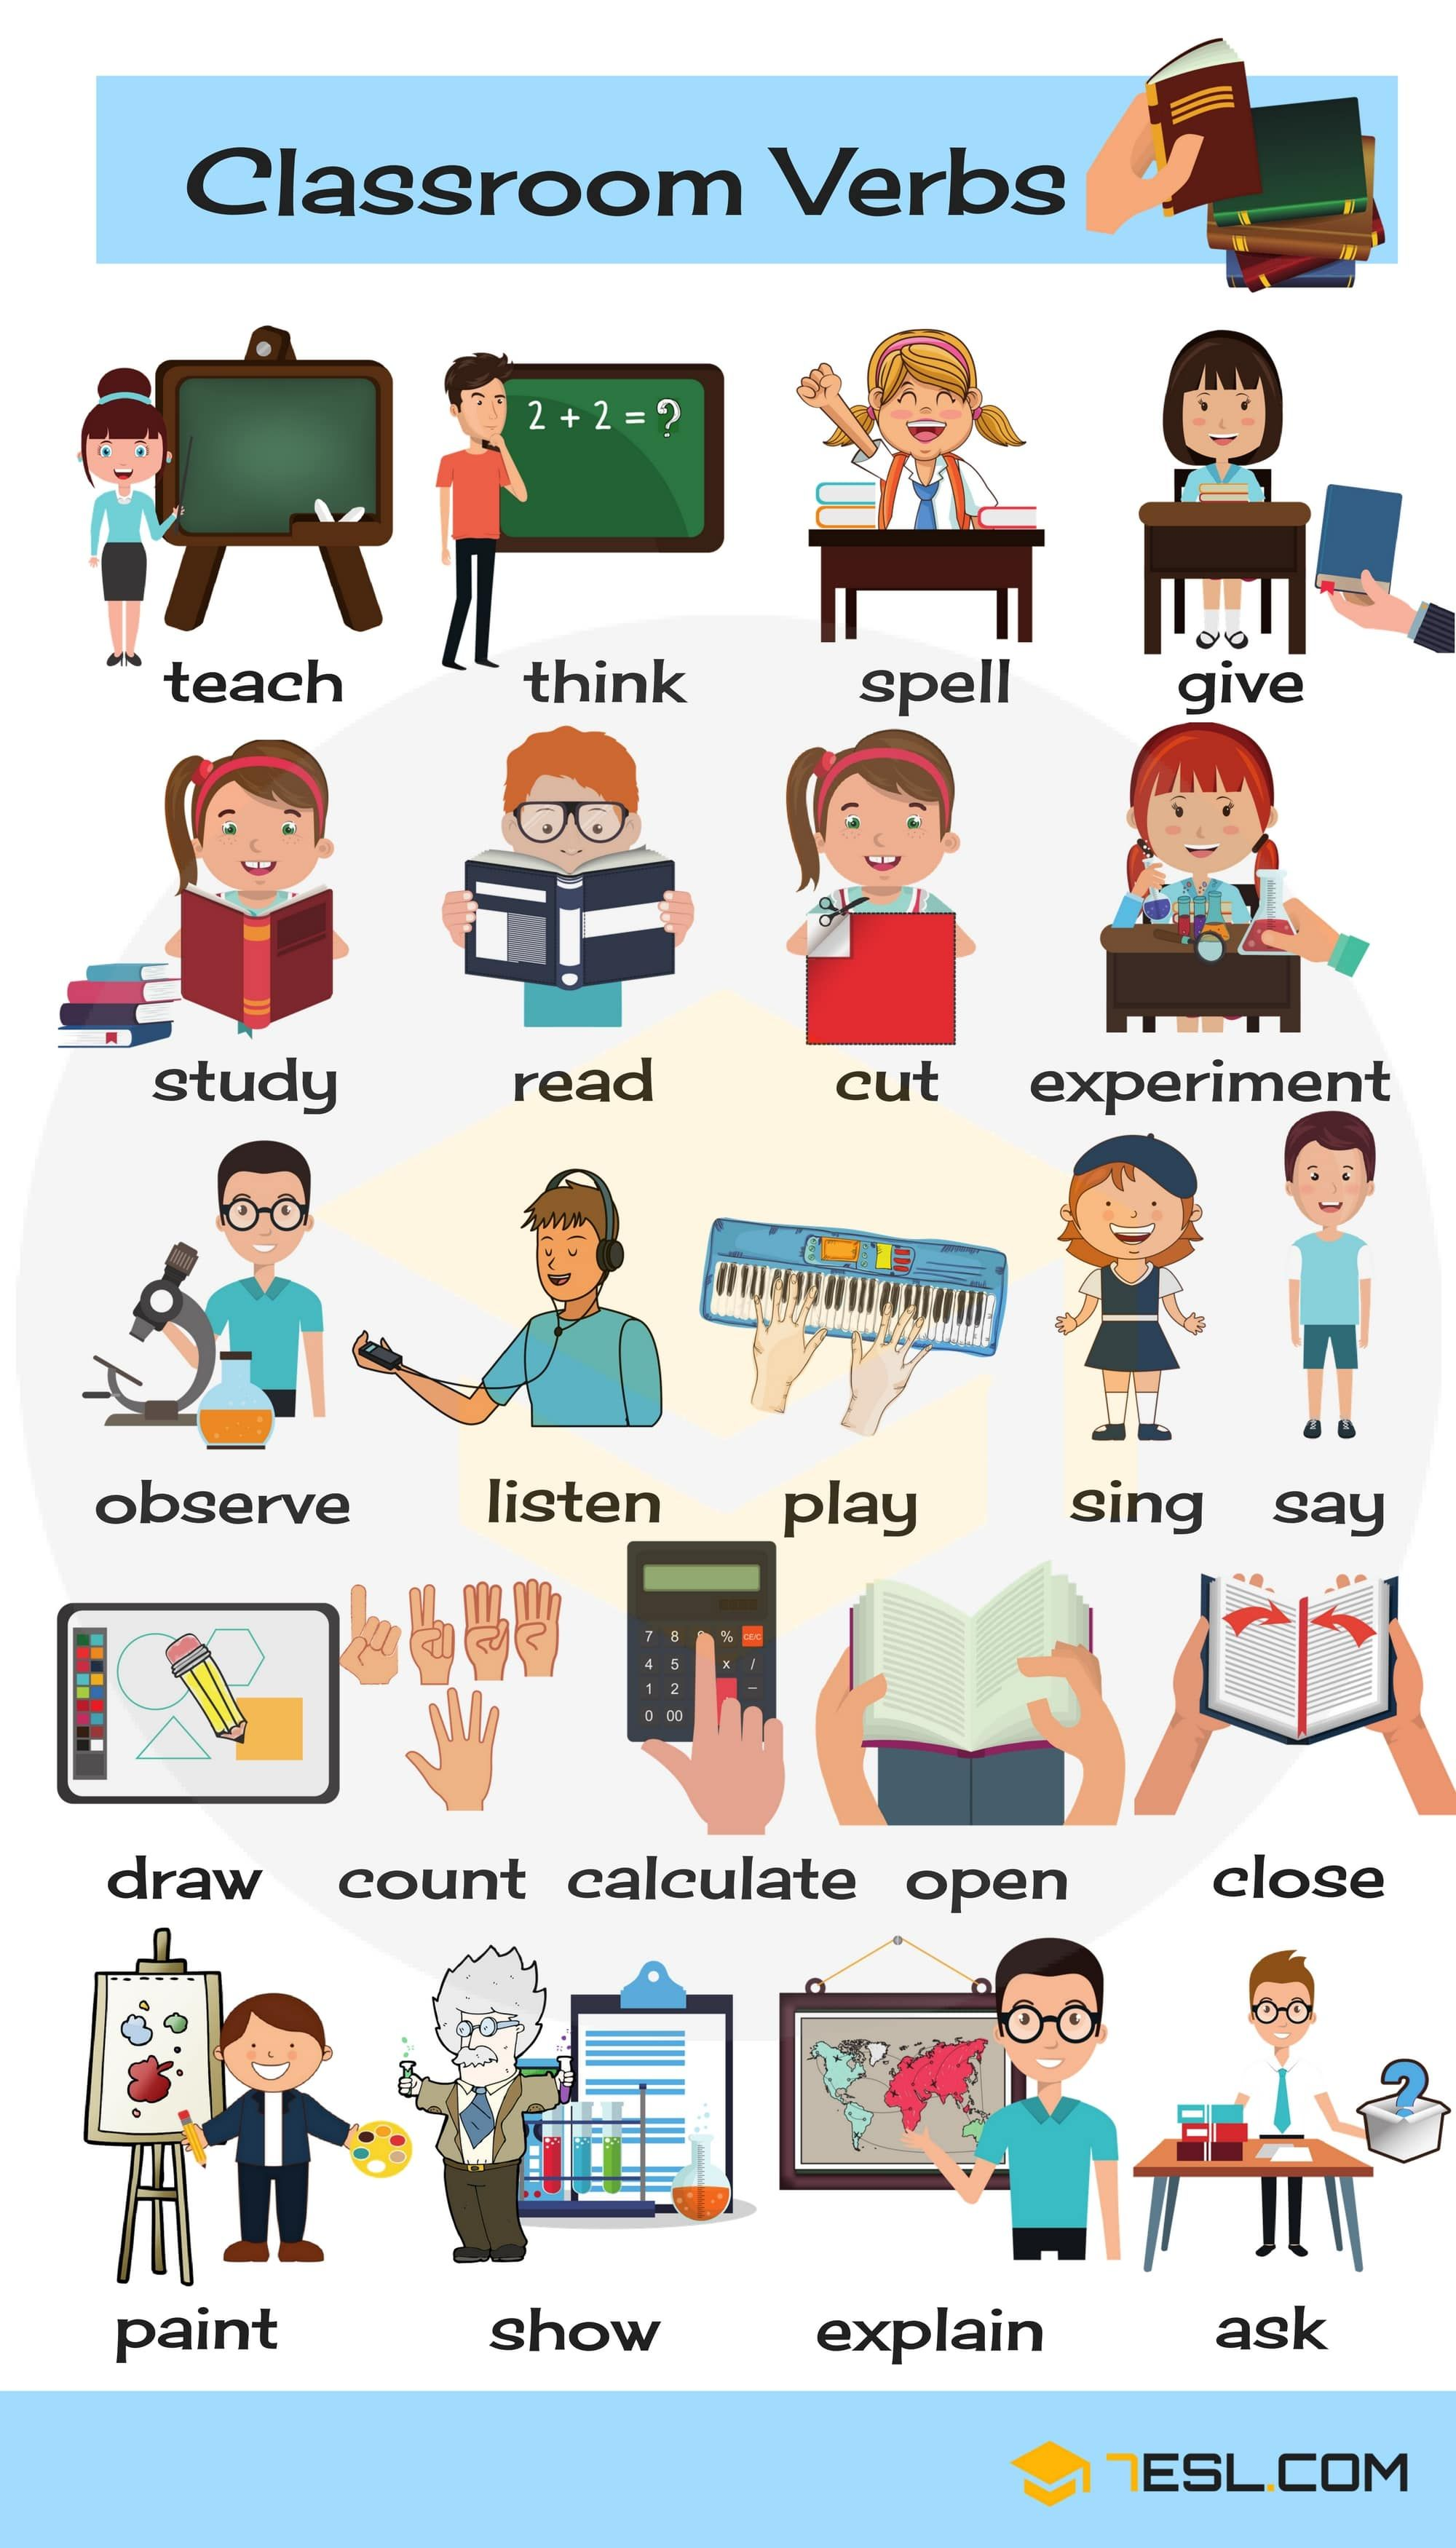 Classroom Verbs List Of School Verbs With Pictures With